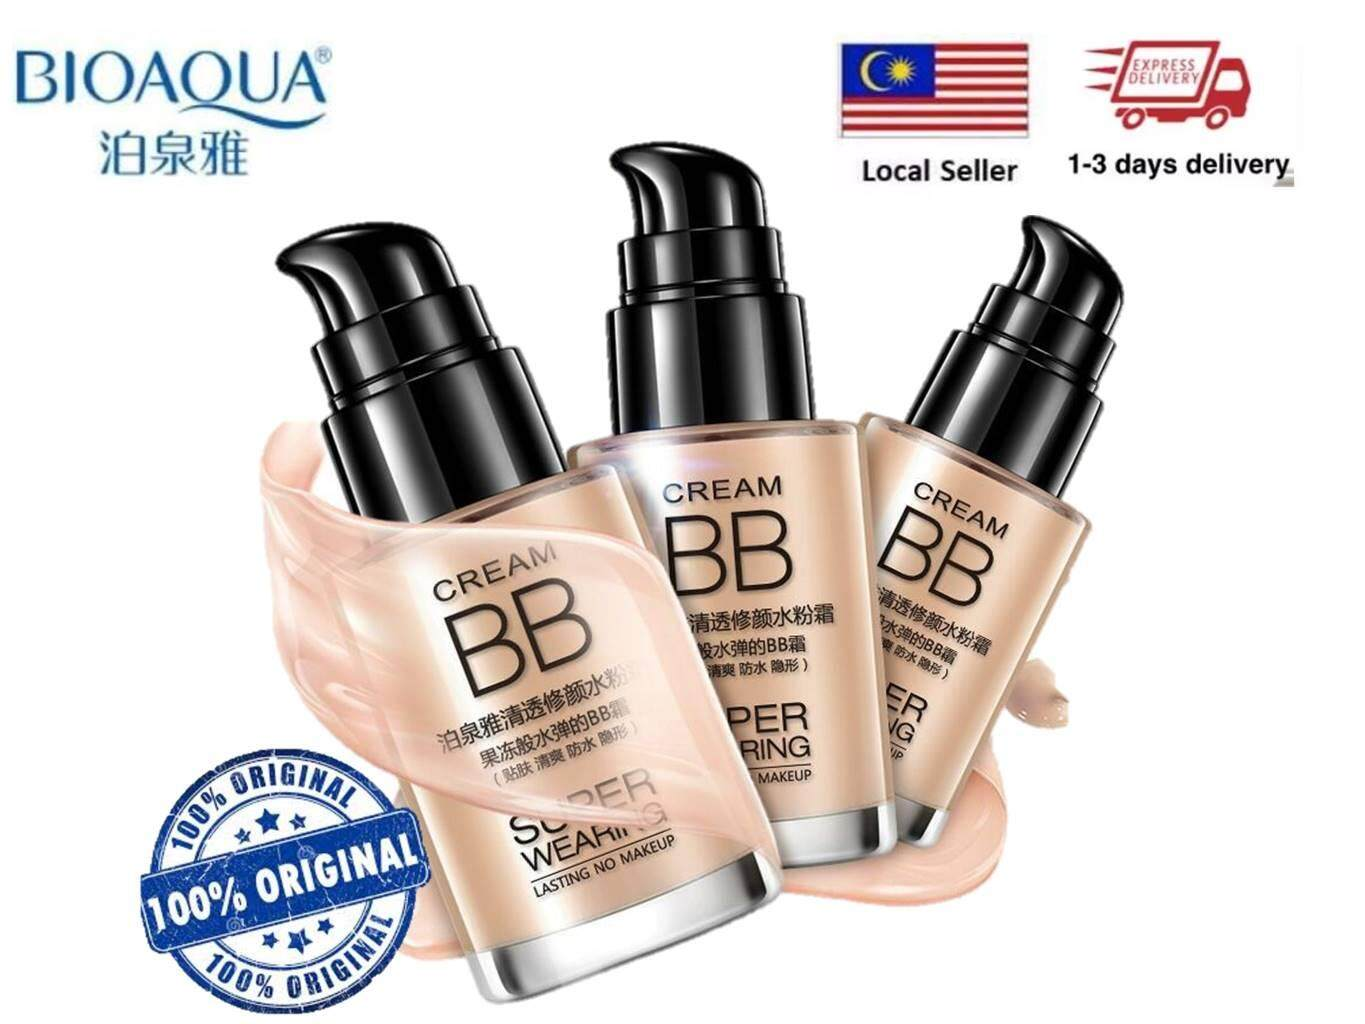 Face Makeup Bb Cc Cream Buy At Ivory White 02 Bioaqua Cushion Exquisite Delicate Plus Refill 100 Original Super Wearing Persistent Water Flawless 30ml